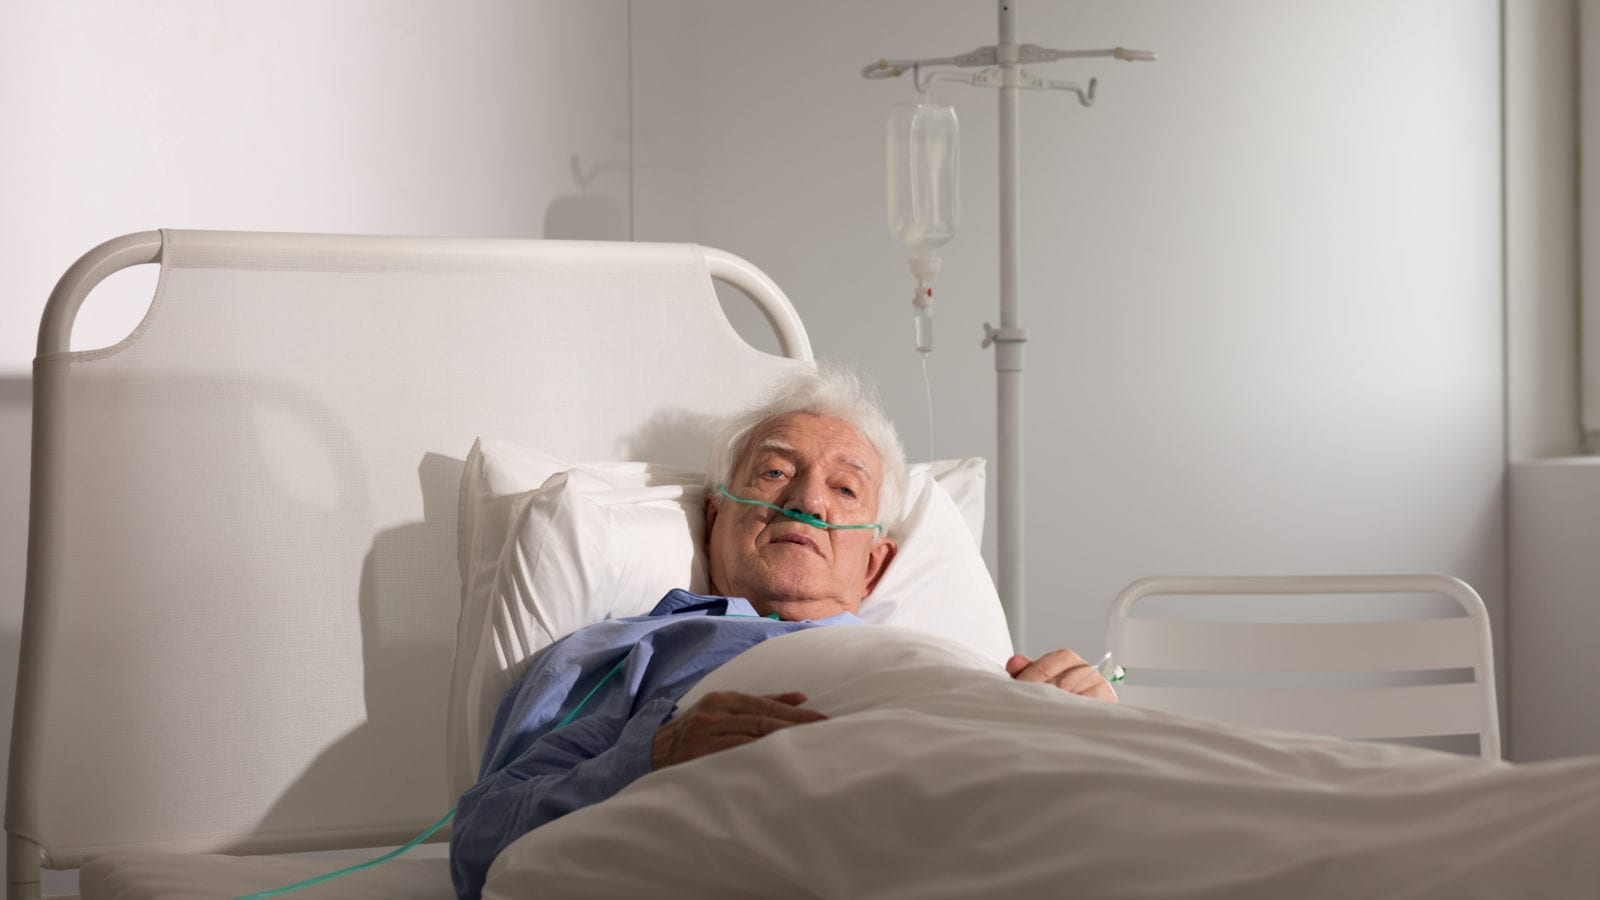 Elderly Man In A Nursing Home Bed